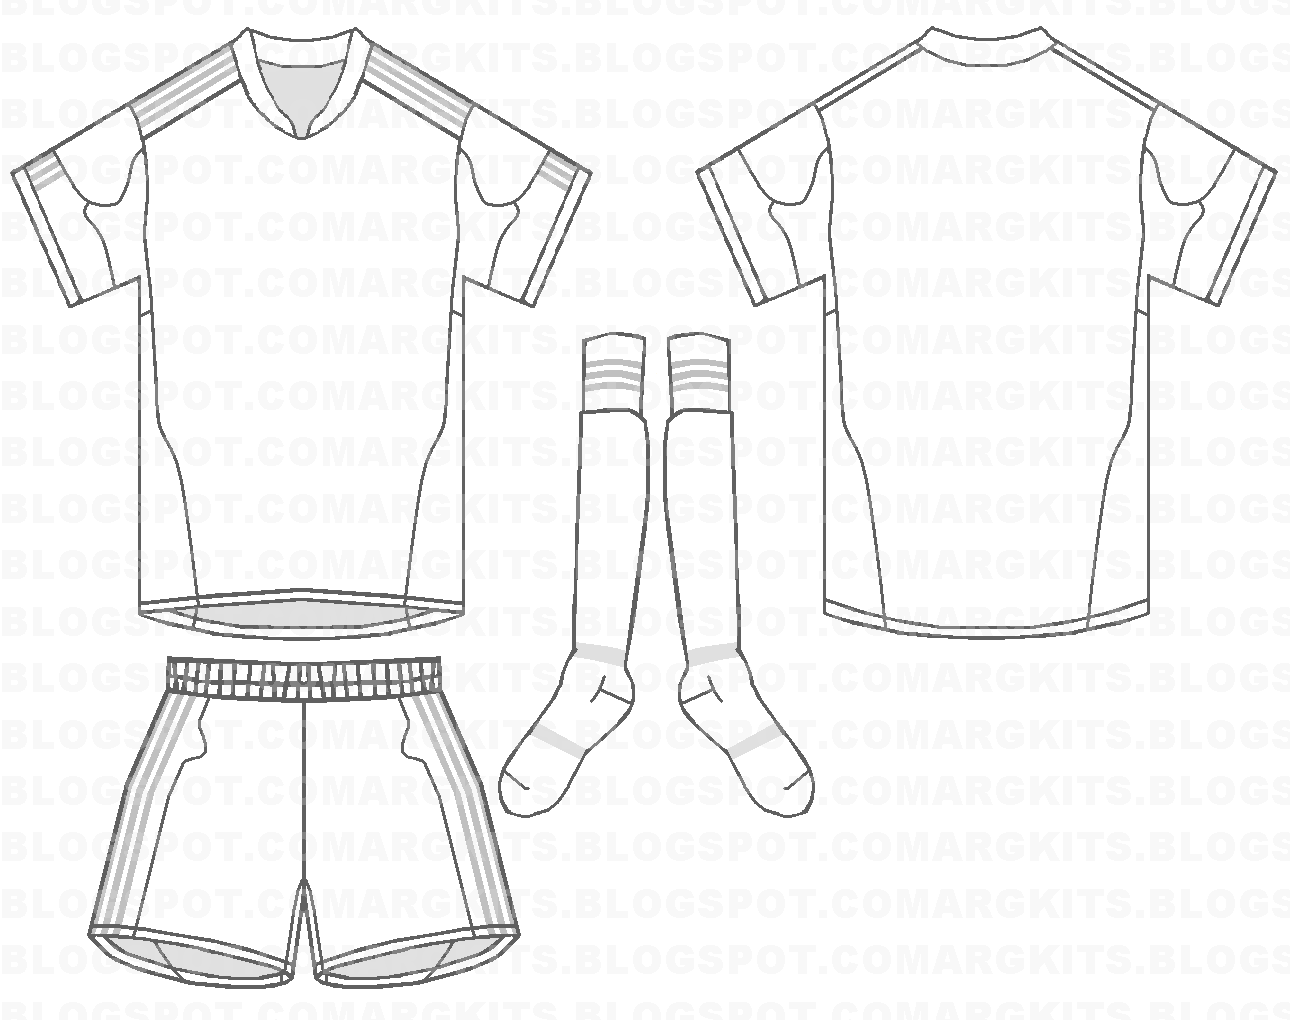 Blank Football Shirts Template.